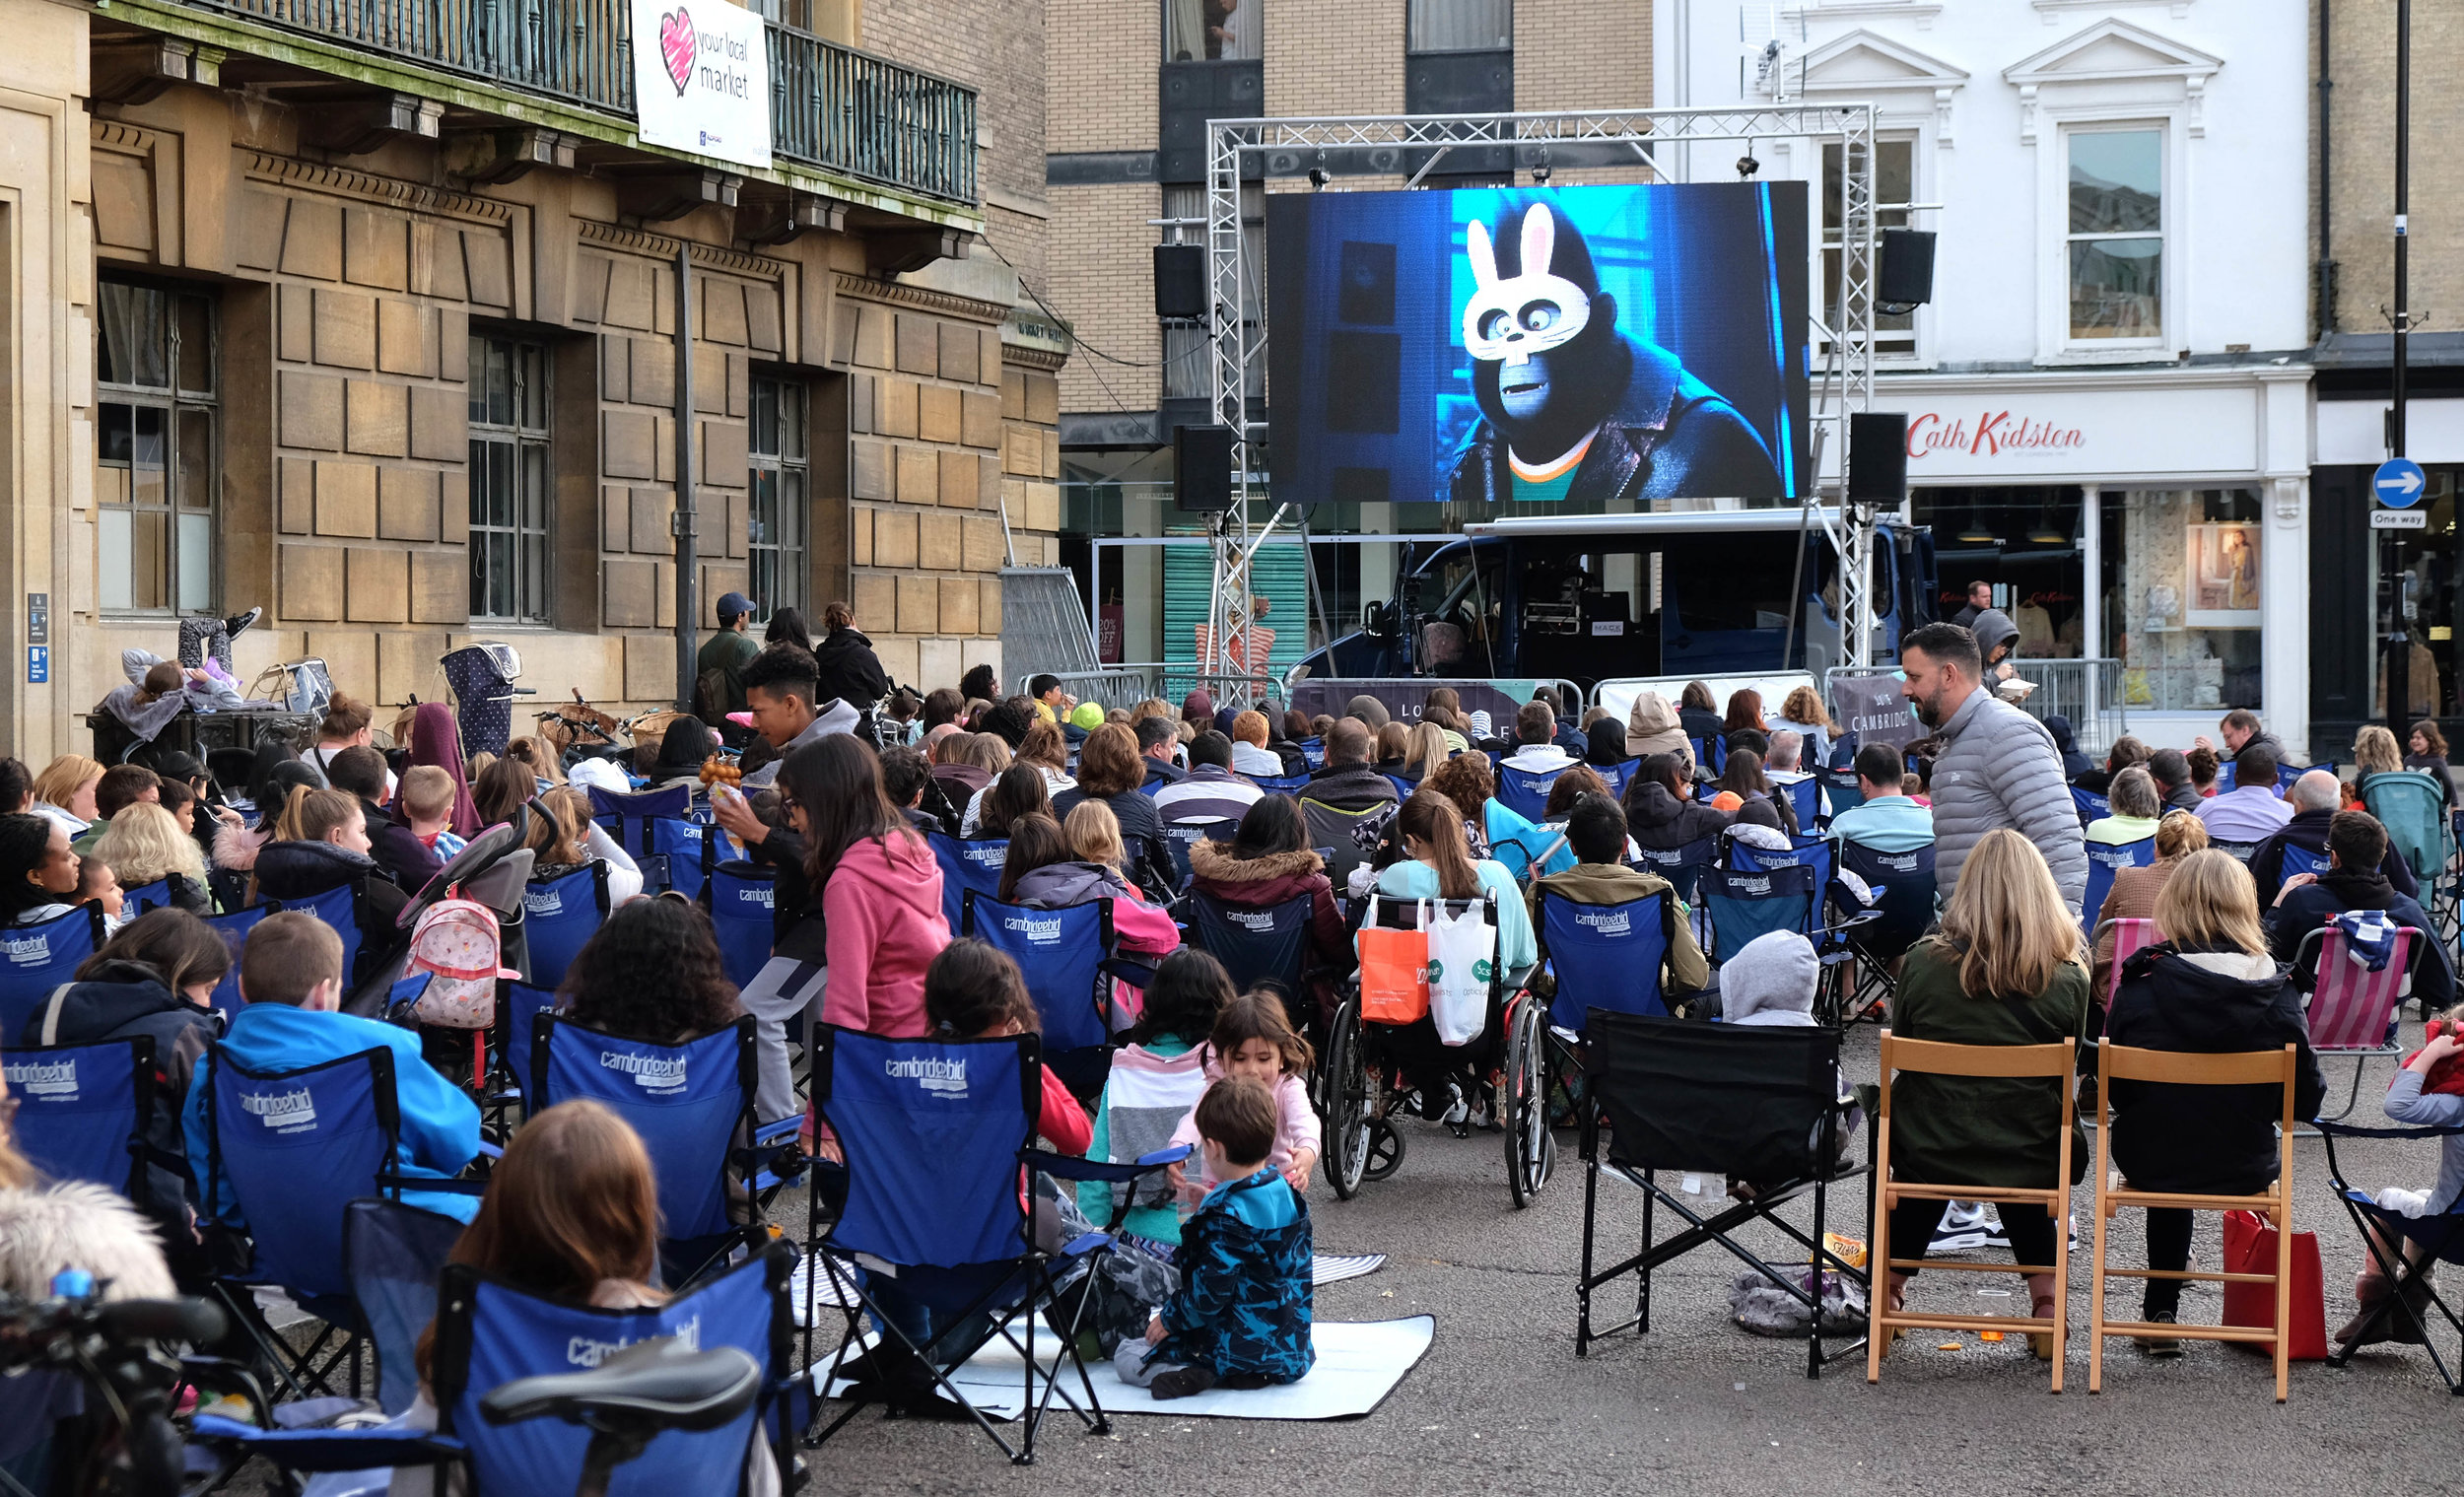 Night Market & Outdoor Cinema - 24th May, 21st June, 26th July & 30th August 2019Cambridge Night Market and Outdoor Cinema is a series of free market events happening throughout the summer. Films and market stalls details will be announced soon!